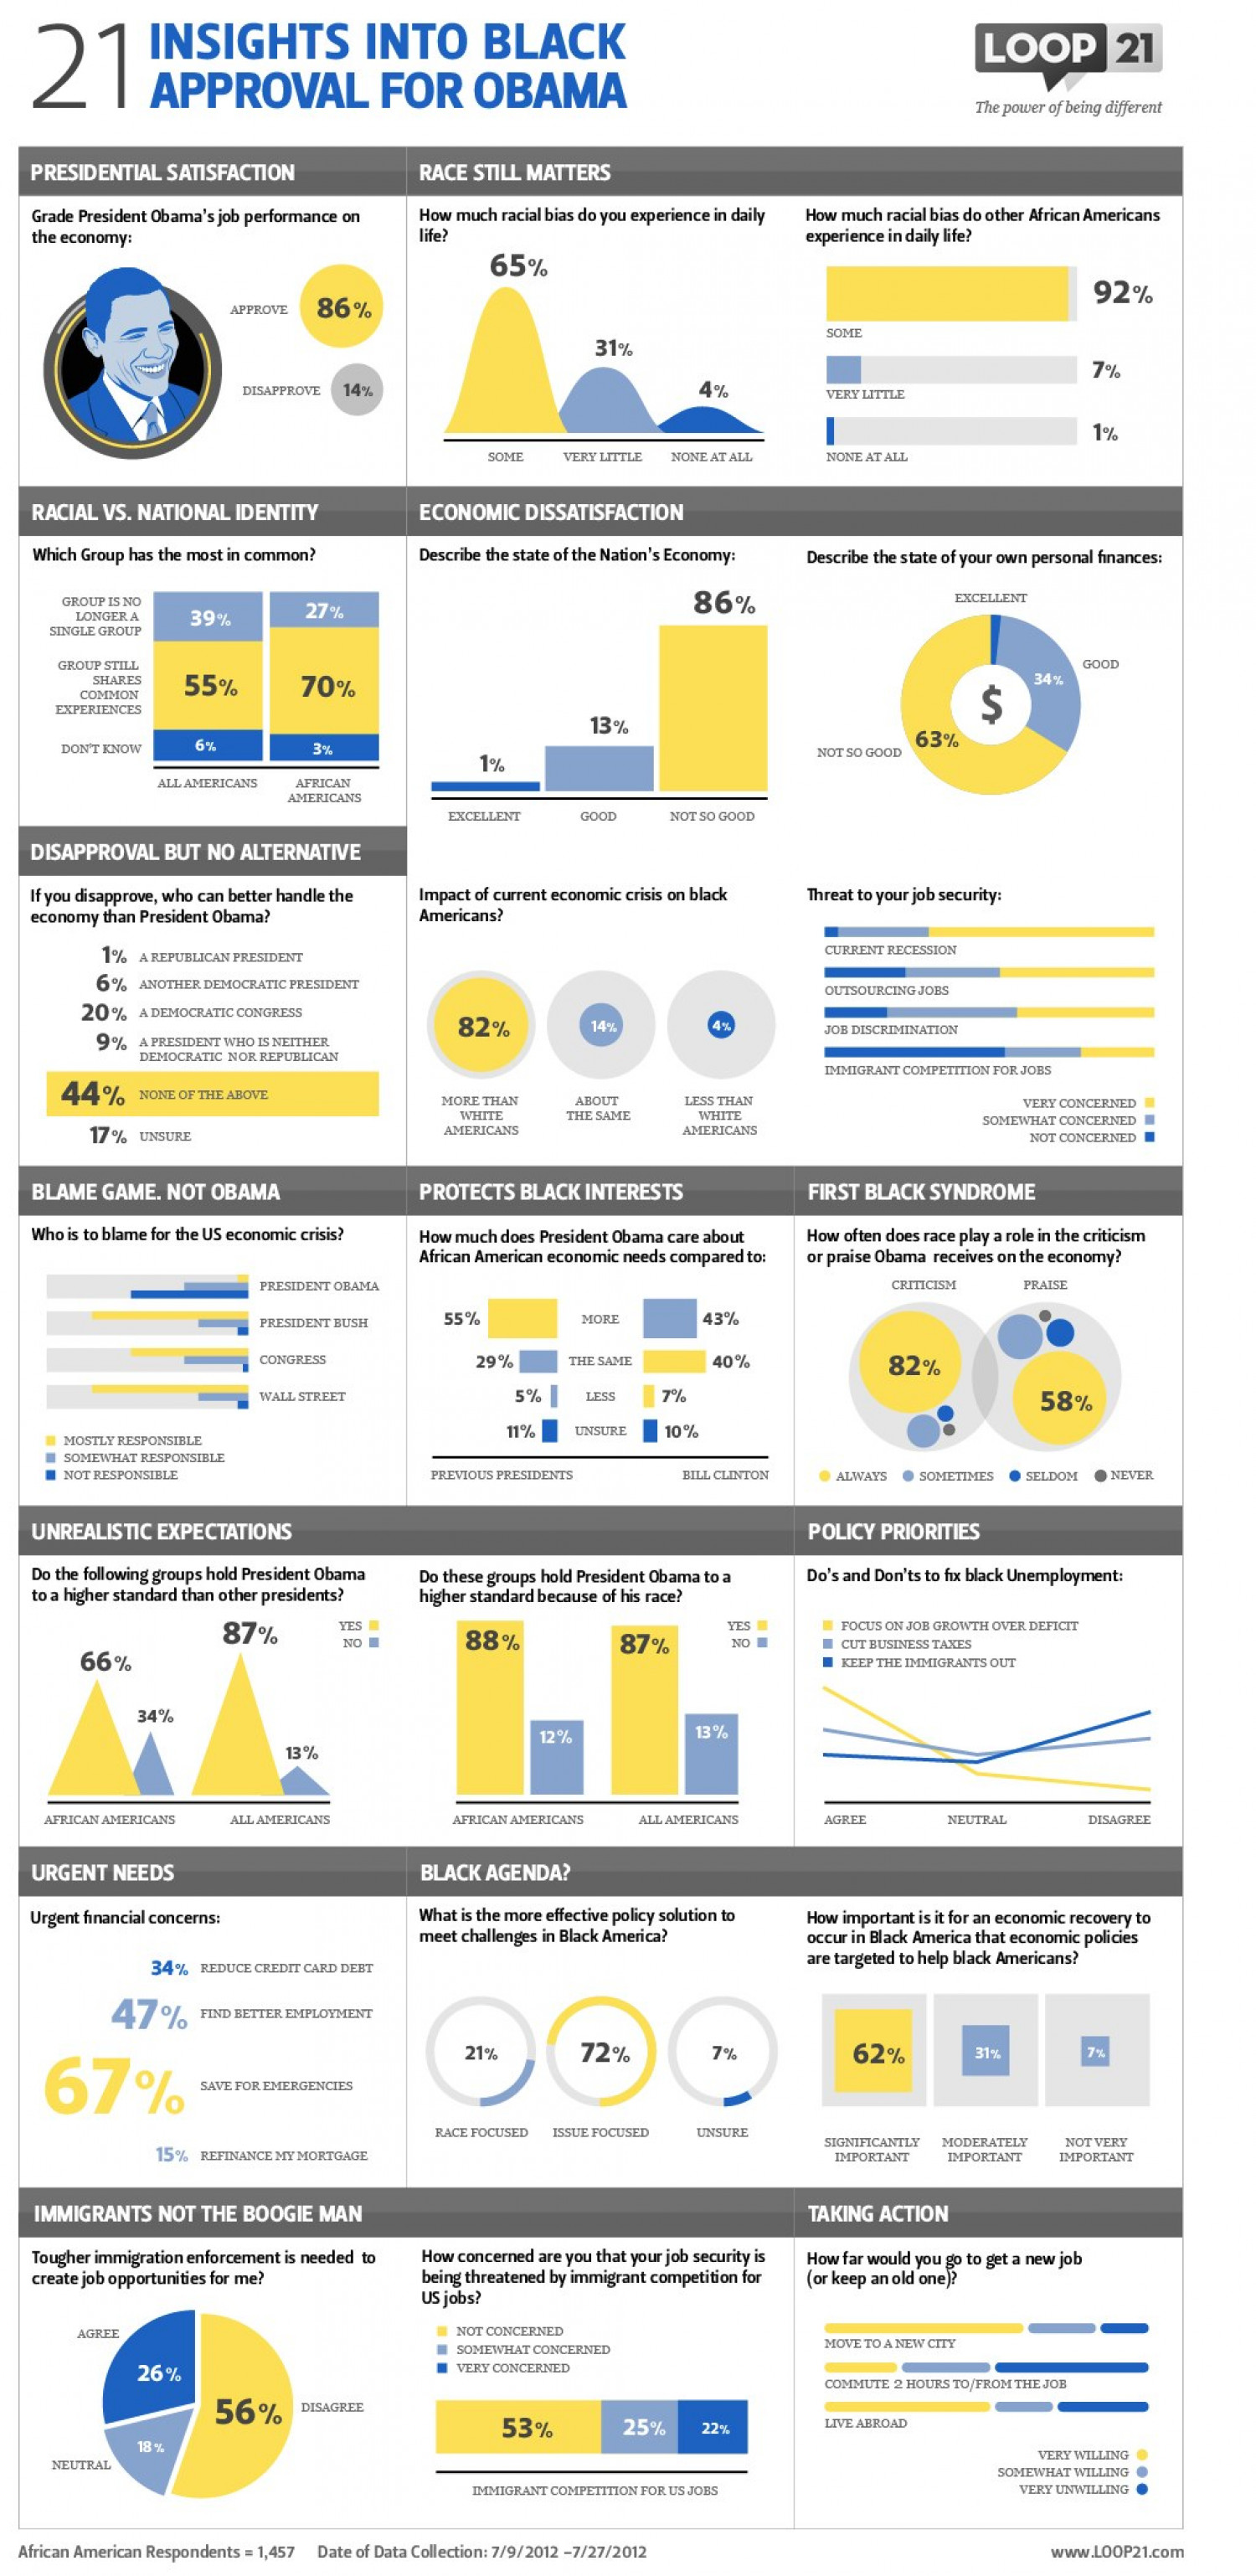 21 Insights: Black Approval For President Obama Infographic